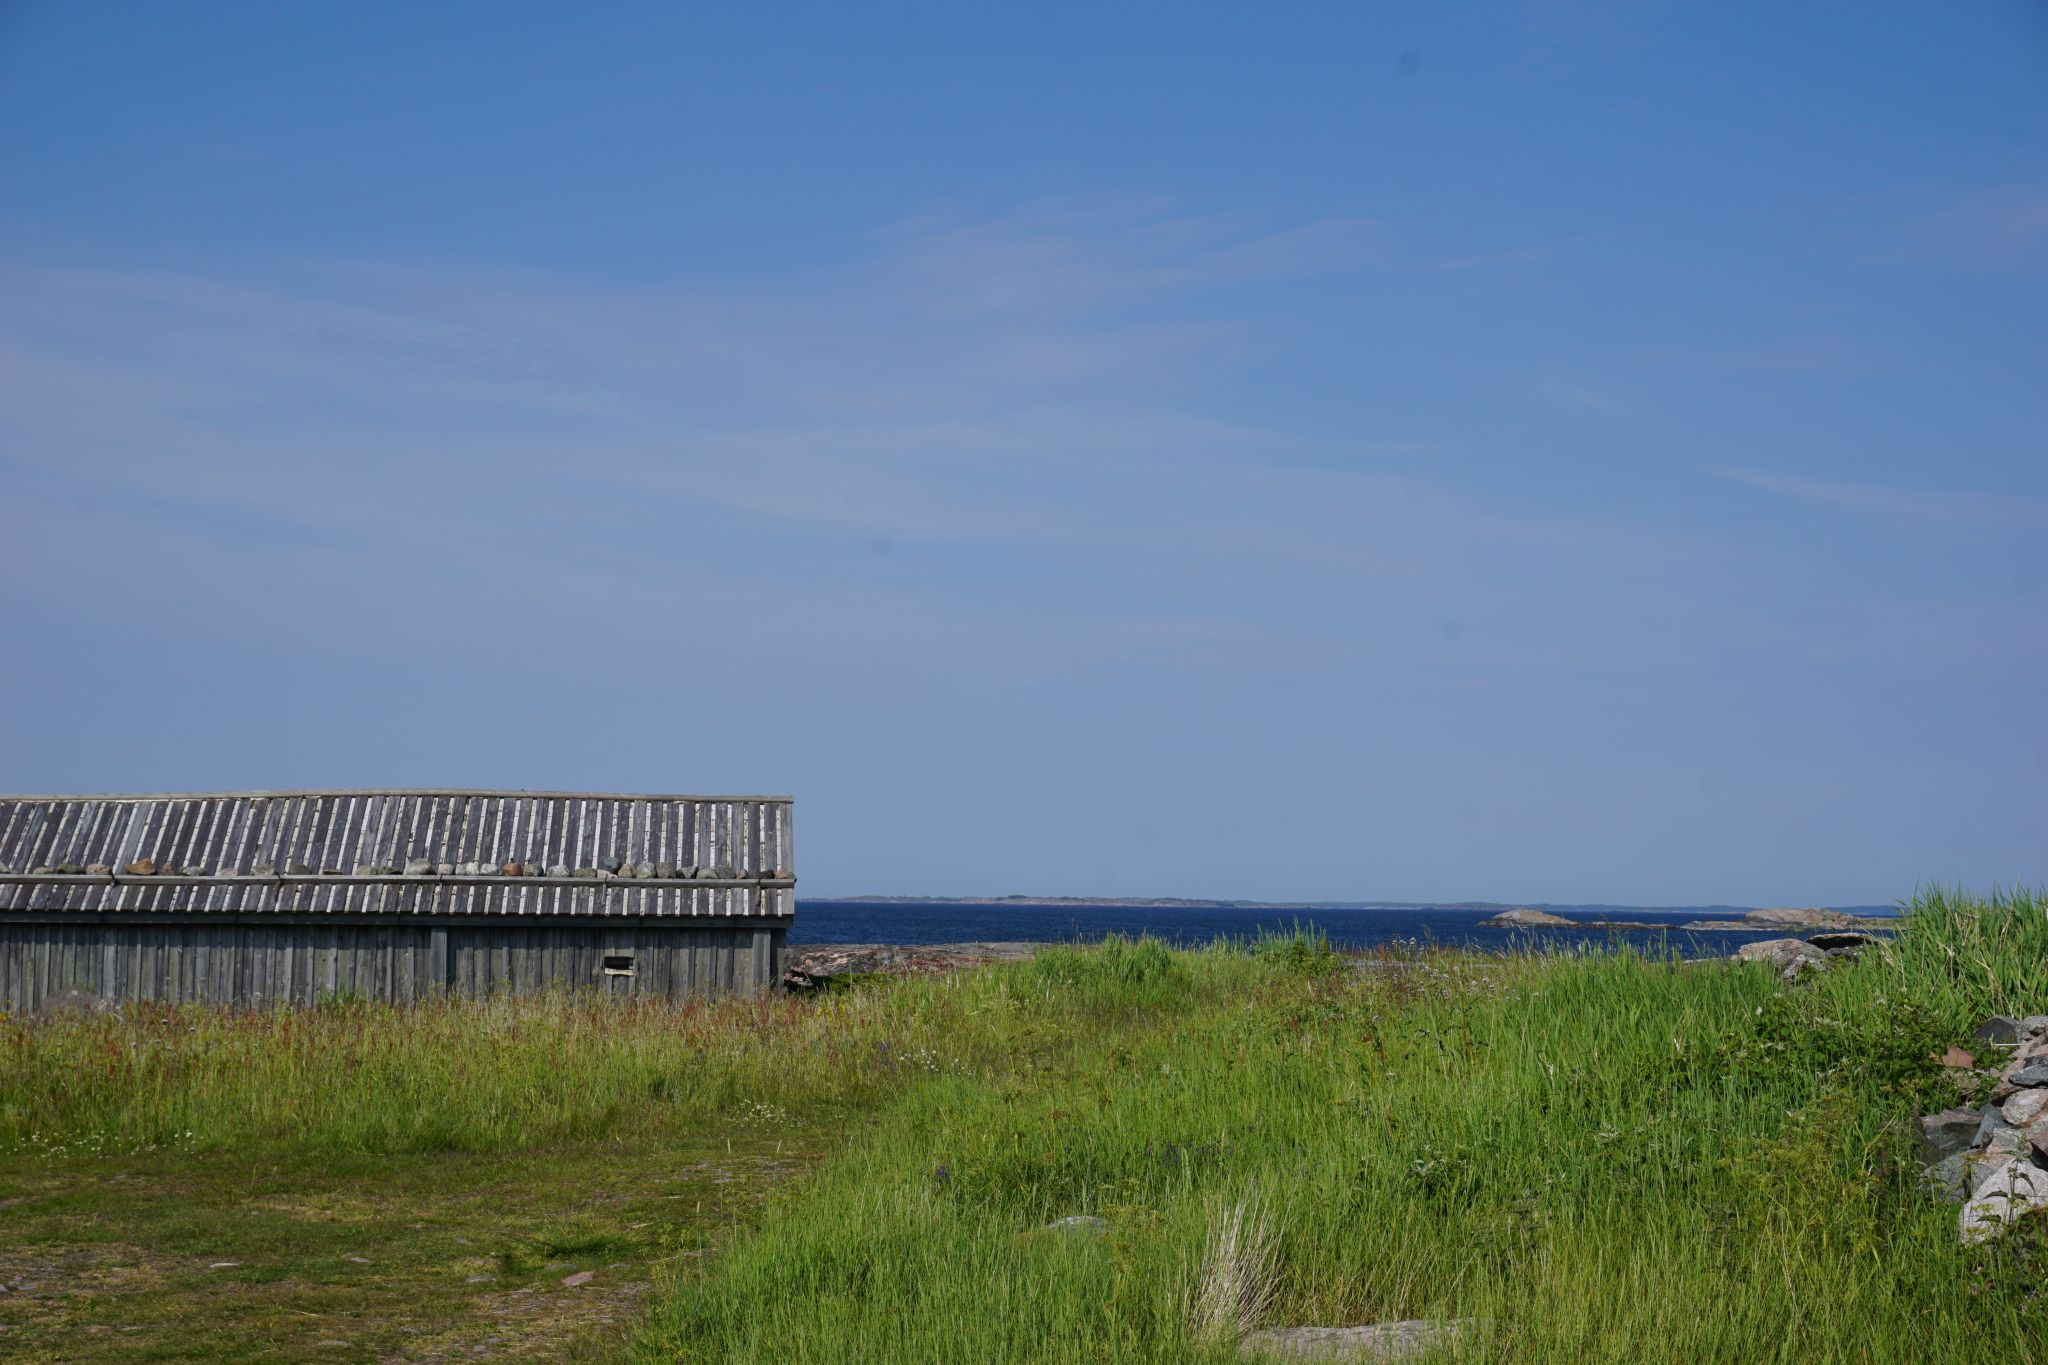 Interesting facts about the island of Jurmo in the Archipelago Sea